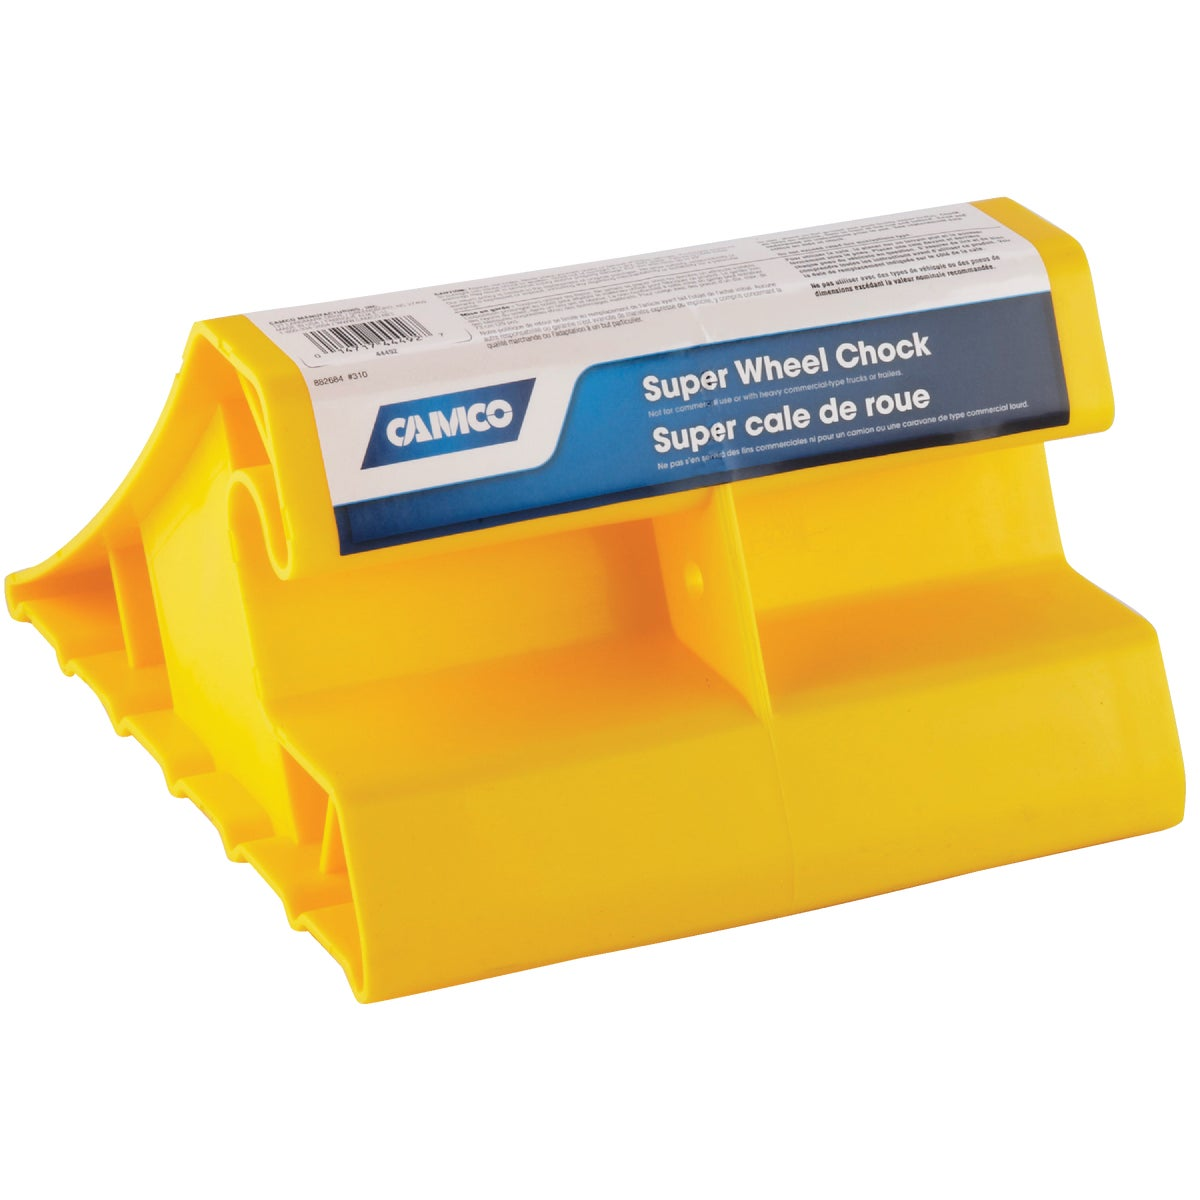 SUPER WHEEL CHOCK - 44492 by Camco Mfg.